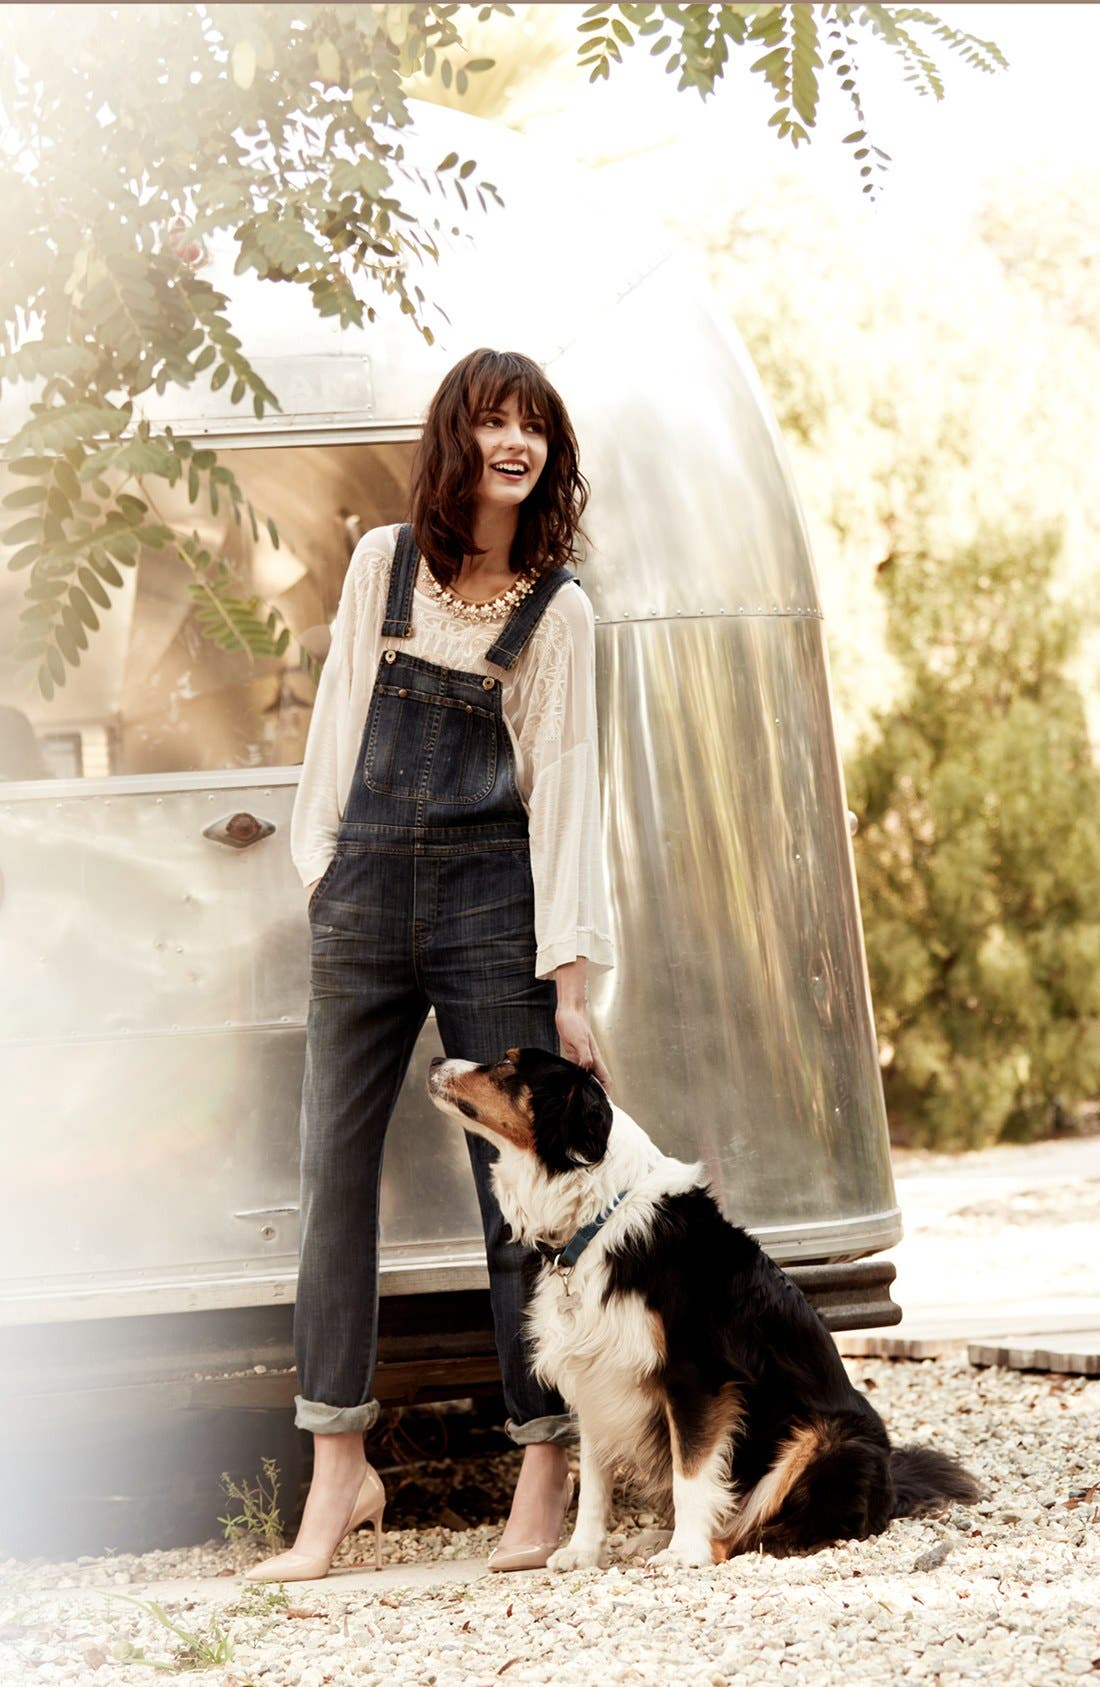 Alternate Image 1 Selected - Free People Top & Citizens of Humanity Overalls